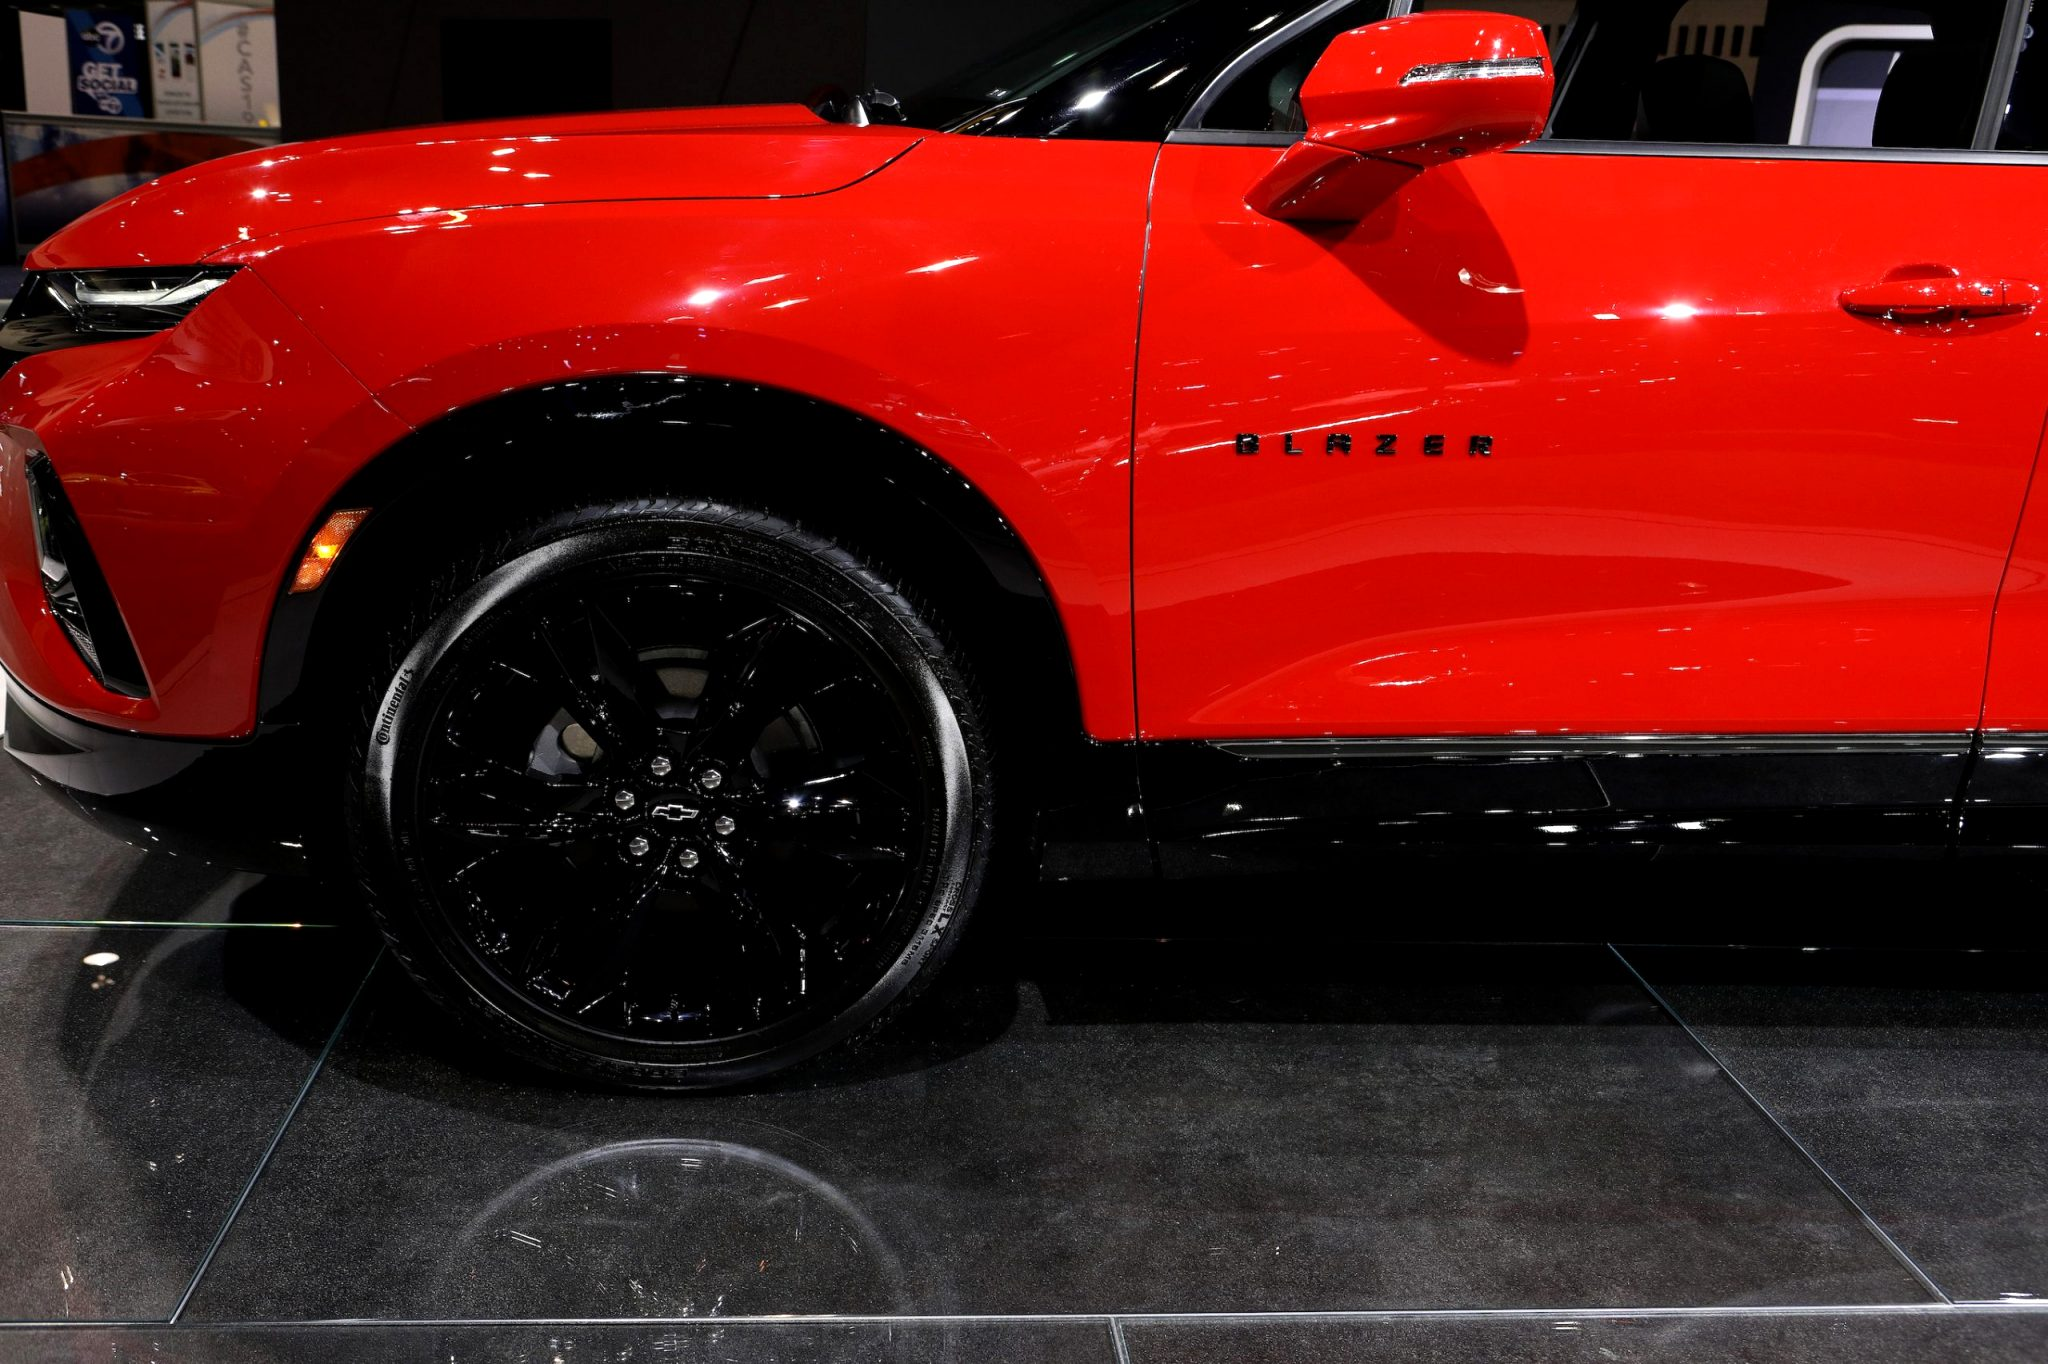 2021 ford blazer Release Date and Concept